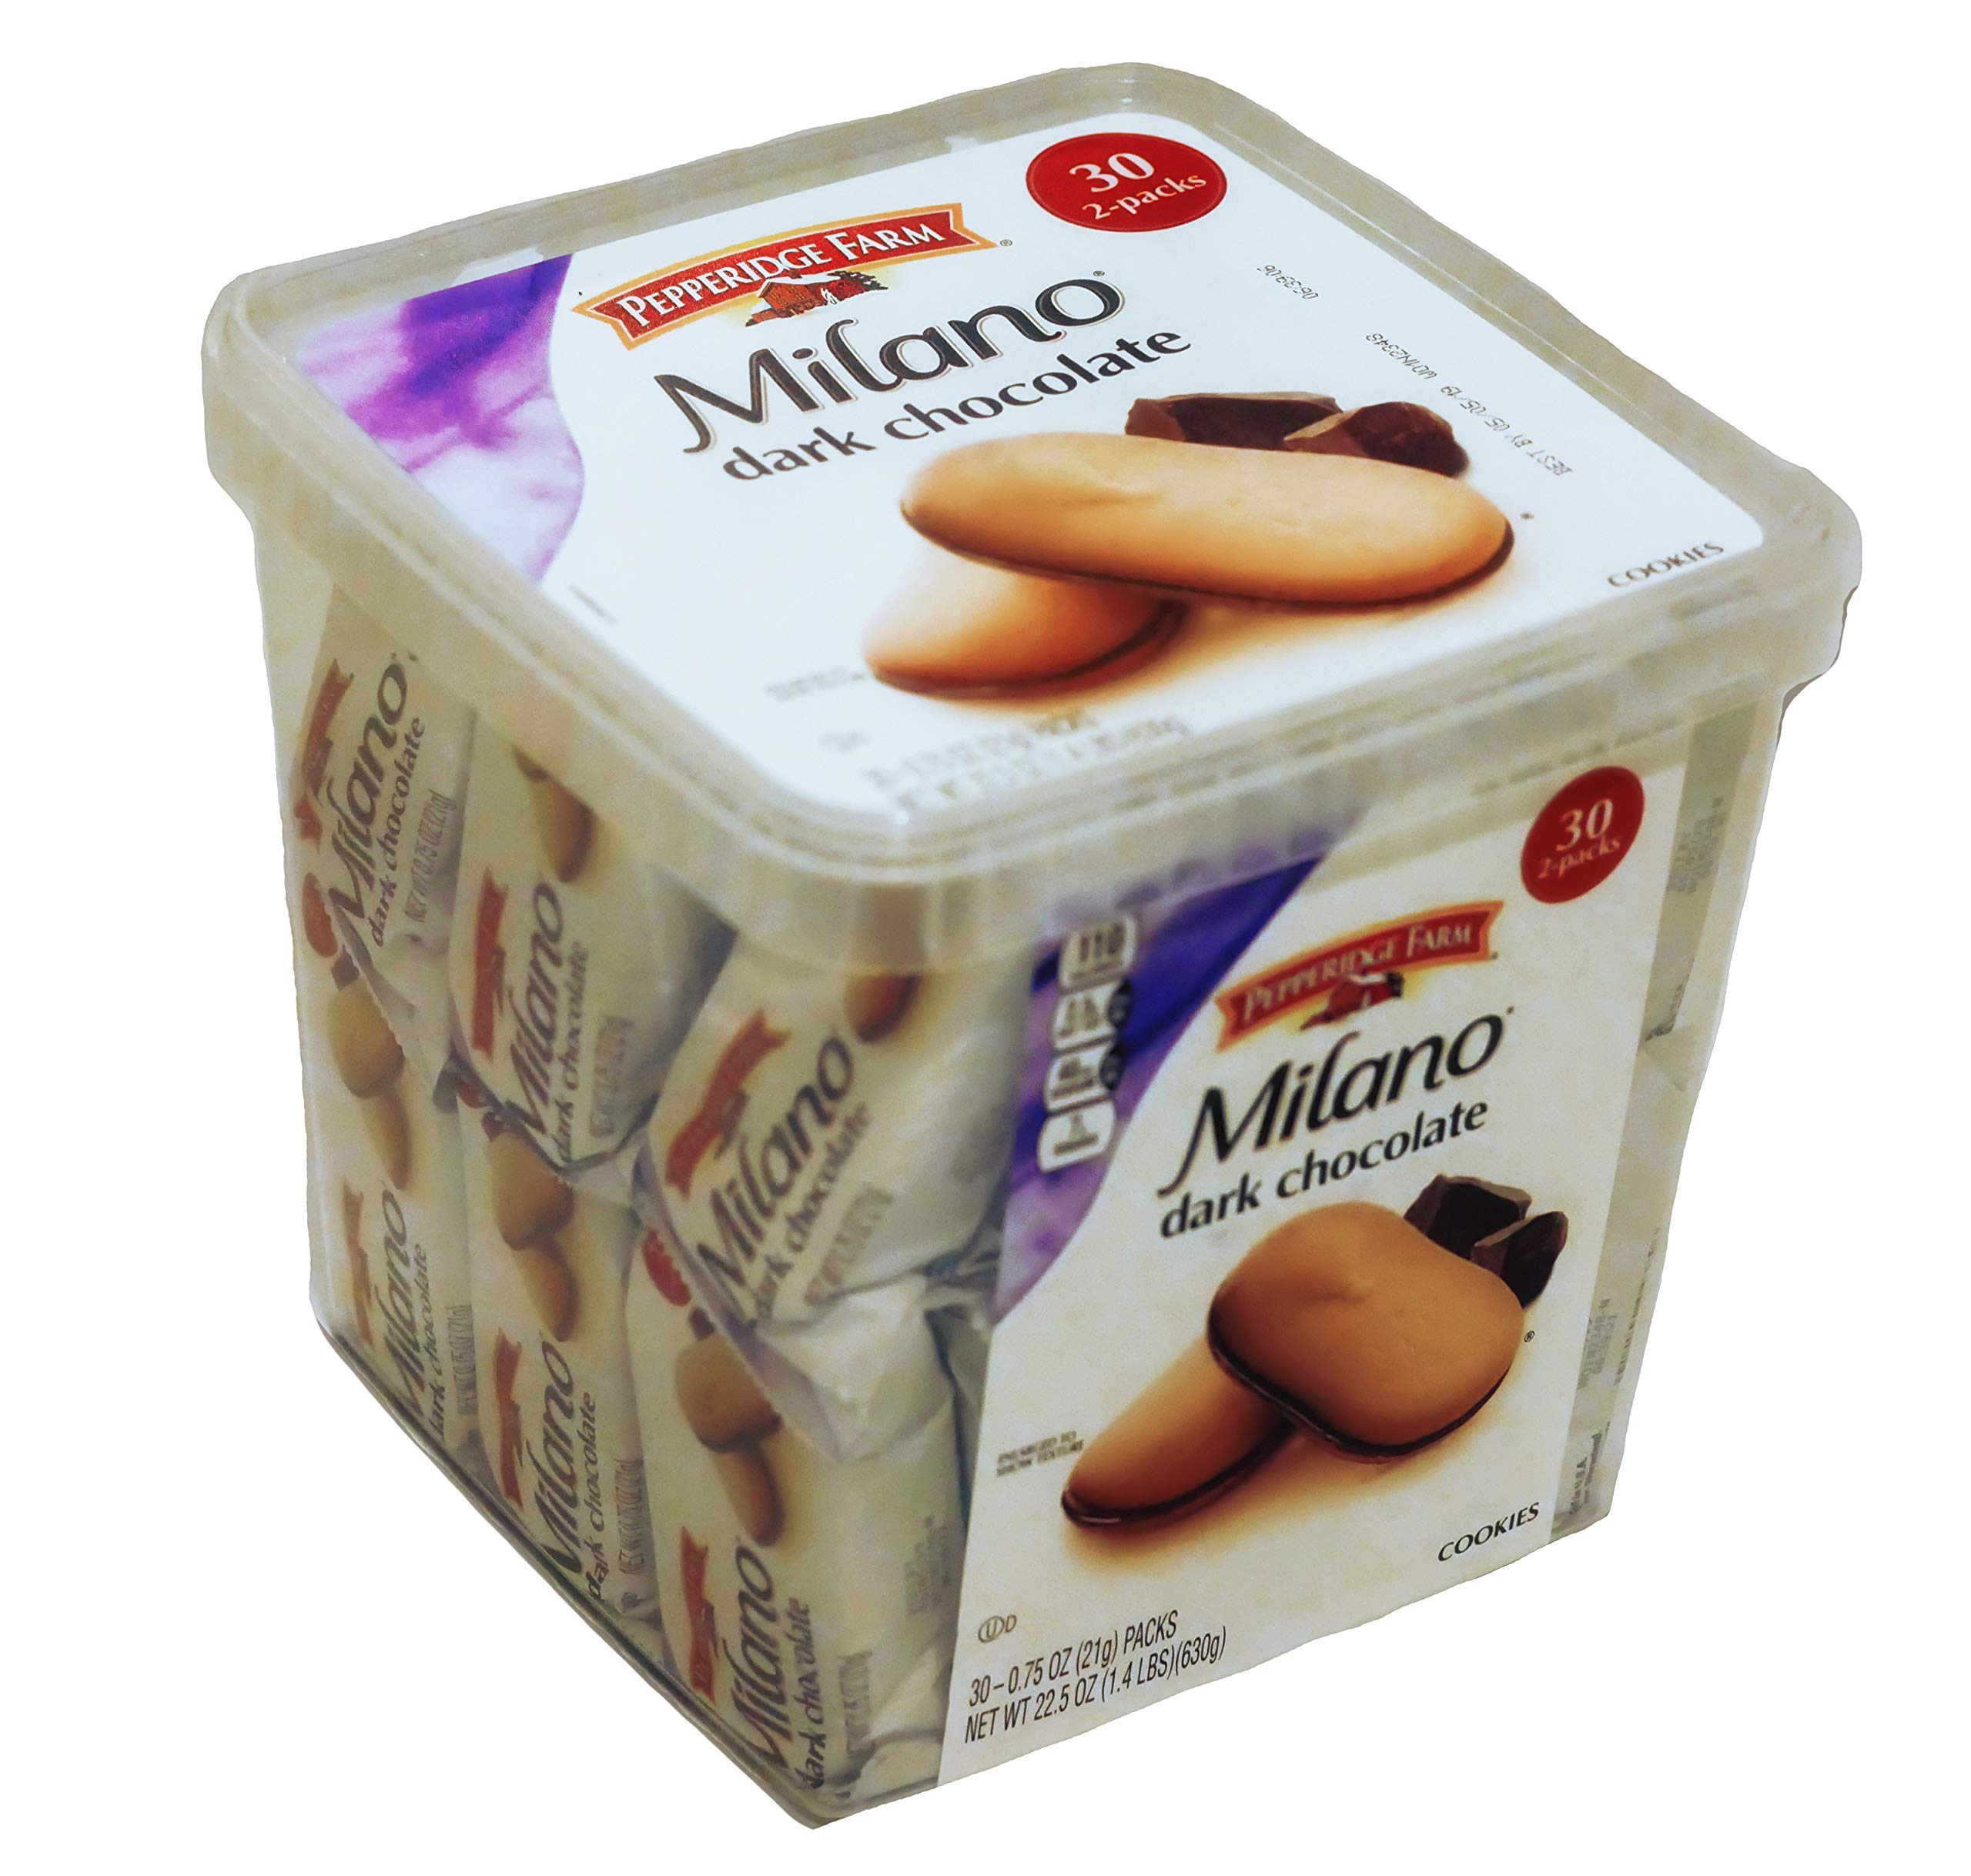 Pepperidge Farm, Milano, Cookies, Dark Chocolate, 22.5 oz, Multi-pack, Tub, 2-packs, 30-count by Pepperidge Farm